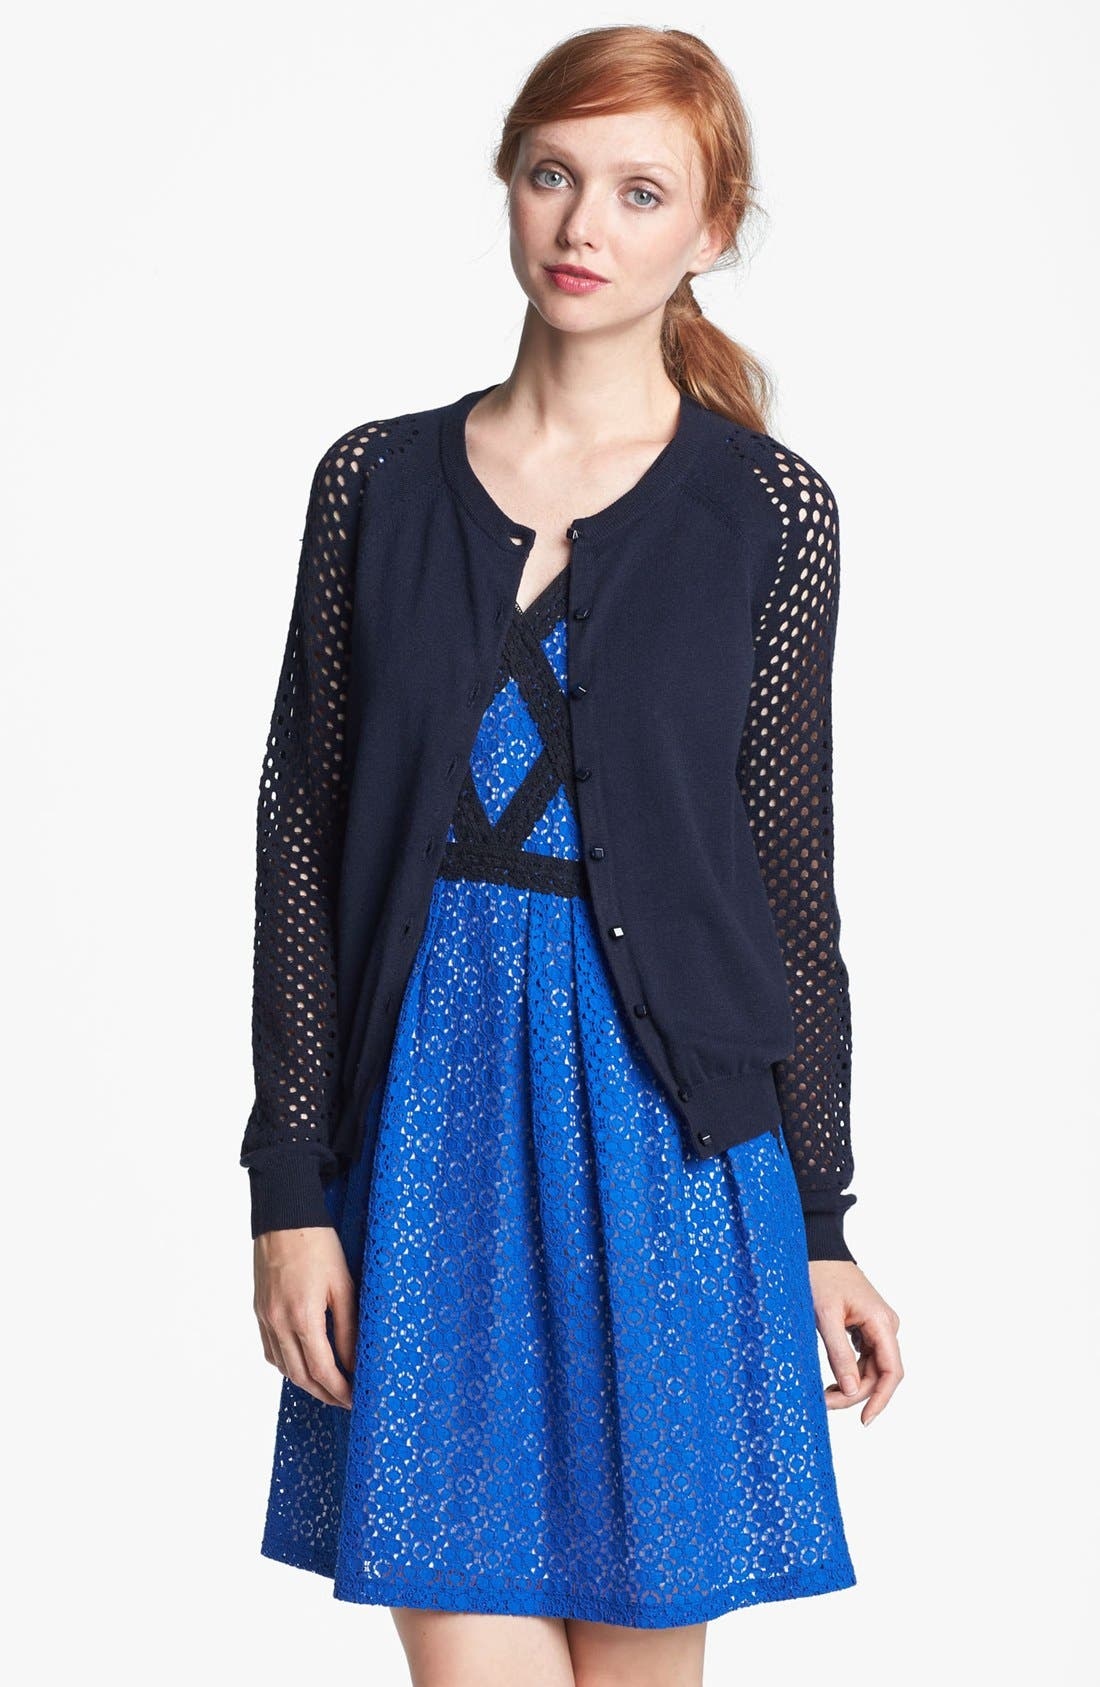 Alternate Image 1 Selected - MARC BY MARC JACOBS 'Cienaga' Cardigan